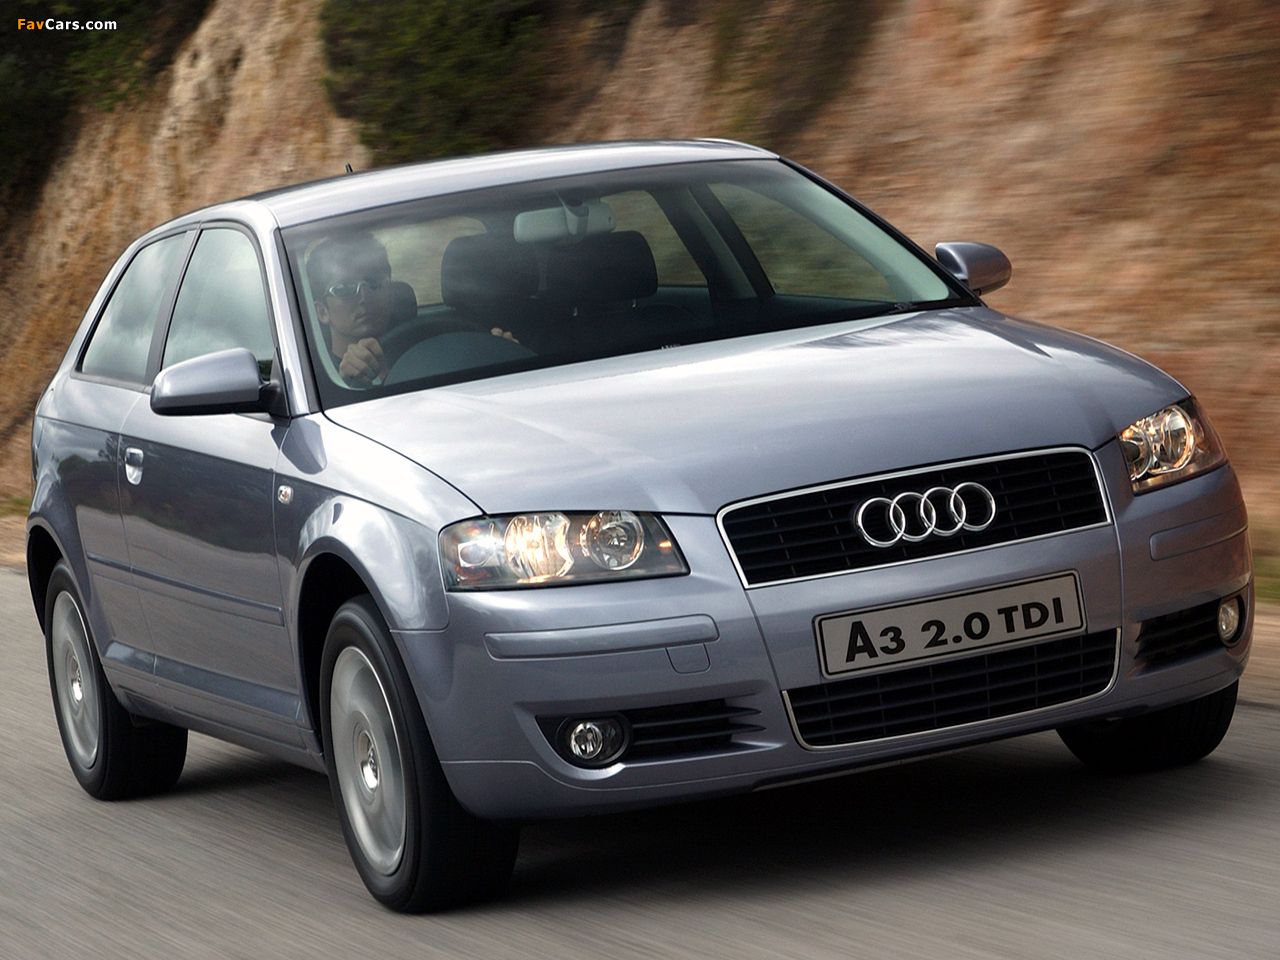 Wallpapers Of Audi A3 2 0 Tdi Za Spec 8p 2003 2005